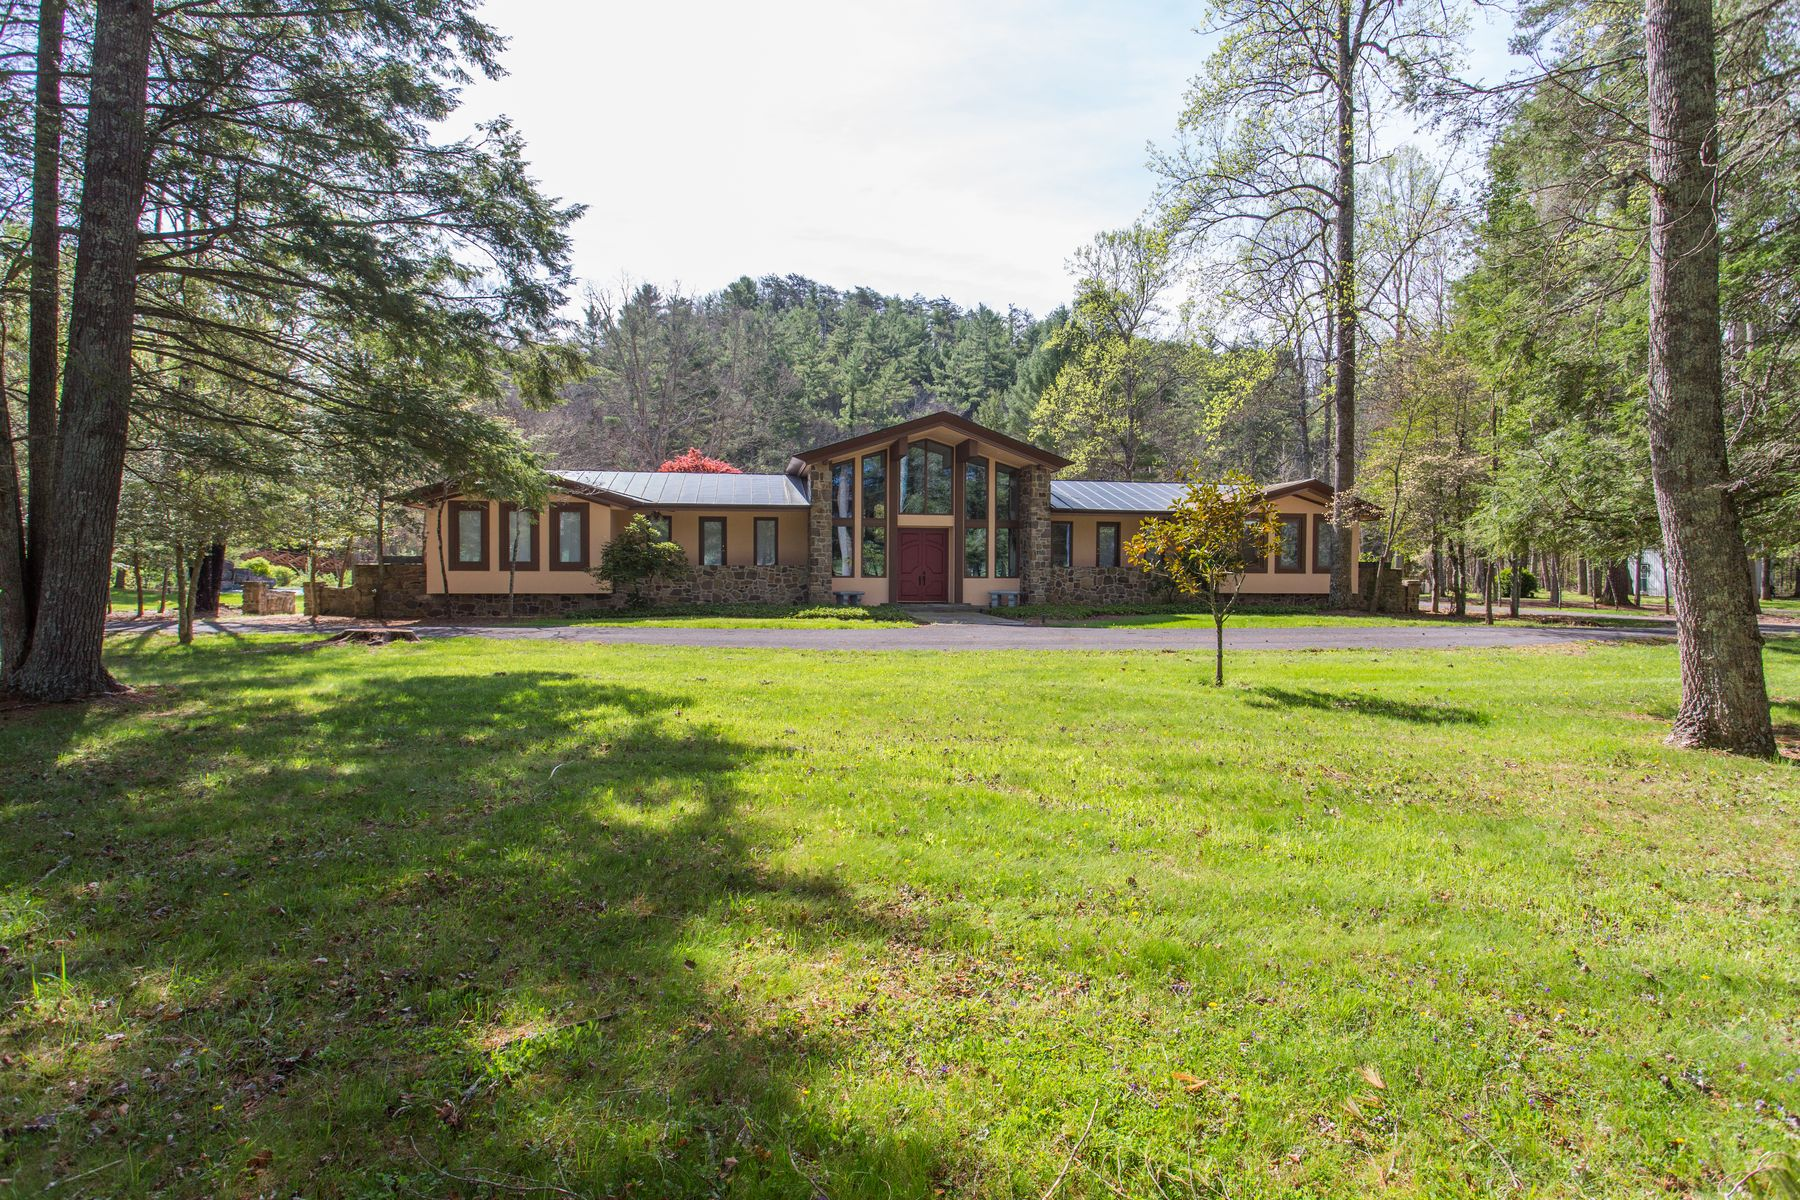 Single Family Home for Sale at 2991 Old Parkersburg Turnpike West Augusta, Virginia 24485 United States